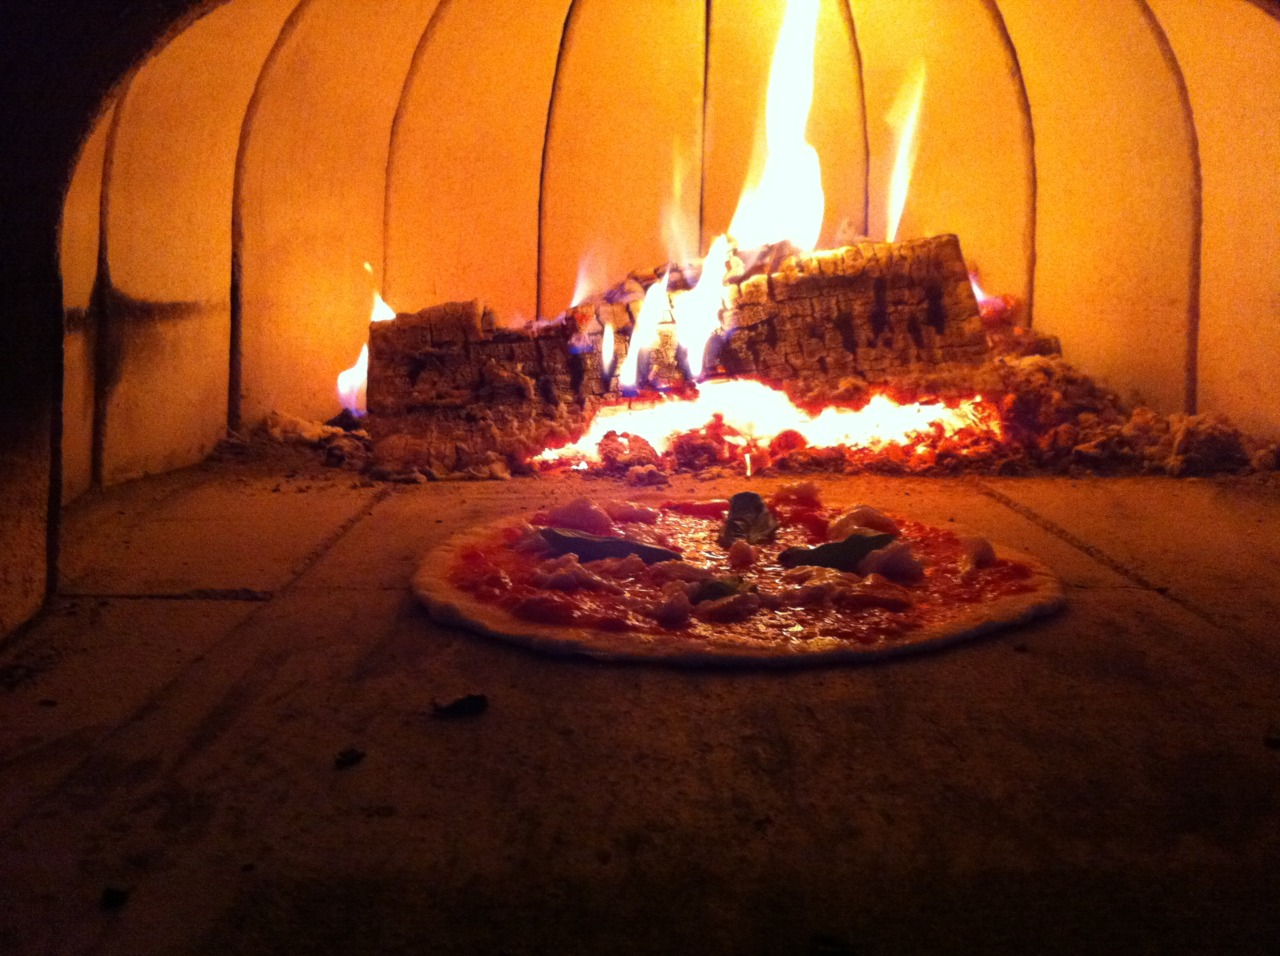 Pizza hibernating in a brick oven. Christa, my partner in pizza, has a father who has embraced his Italian heritage like Hootie has embraced a colony of Blowfish. Christa's father, on his endless journey to become Pittsburgh's unofficial little Italy, had a brick oven pizza in his backyard. Yes, right next to his bocci court.  We had a pizza party last week and I had the opportunity to use the brick oven to create some deliciously crunchy pizza. There's something magical about a brick oven pizza that can nary be replicated in a conventional kitchen. Consider this just a teaser! I'll provide a blow by blow account later this week. In the mean time, does anyone have any bricks they want to lend me?